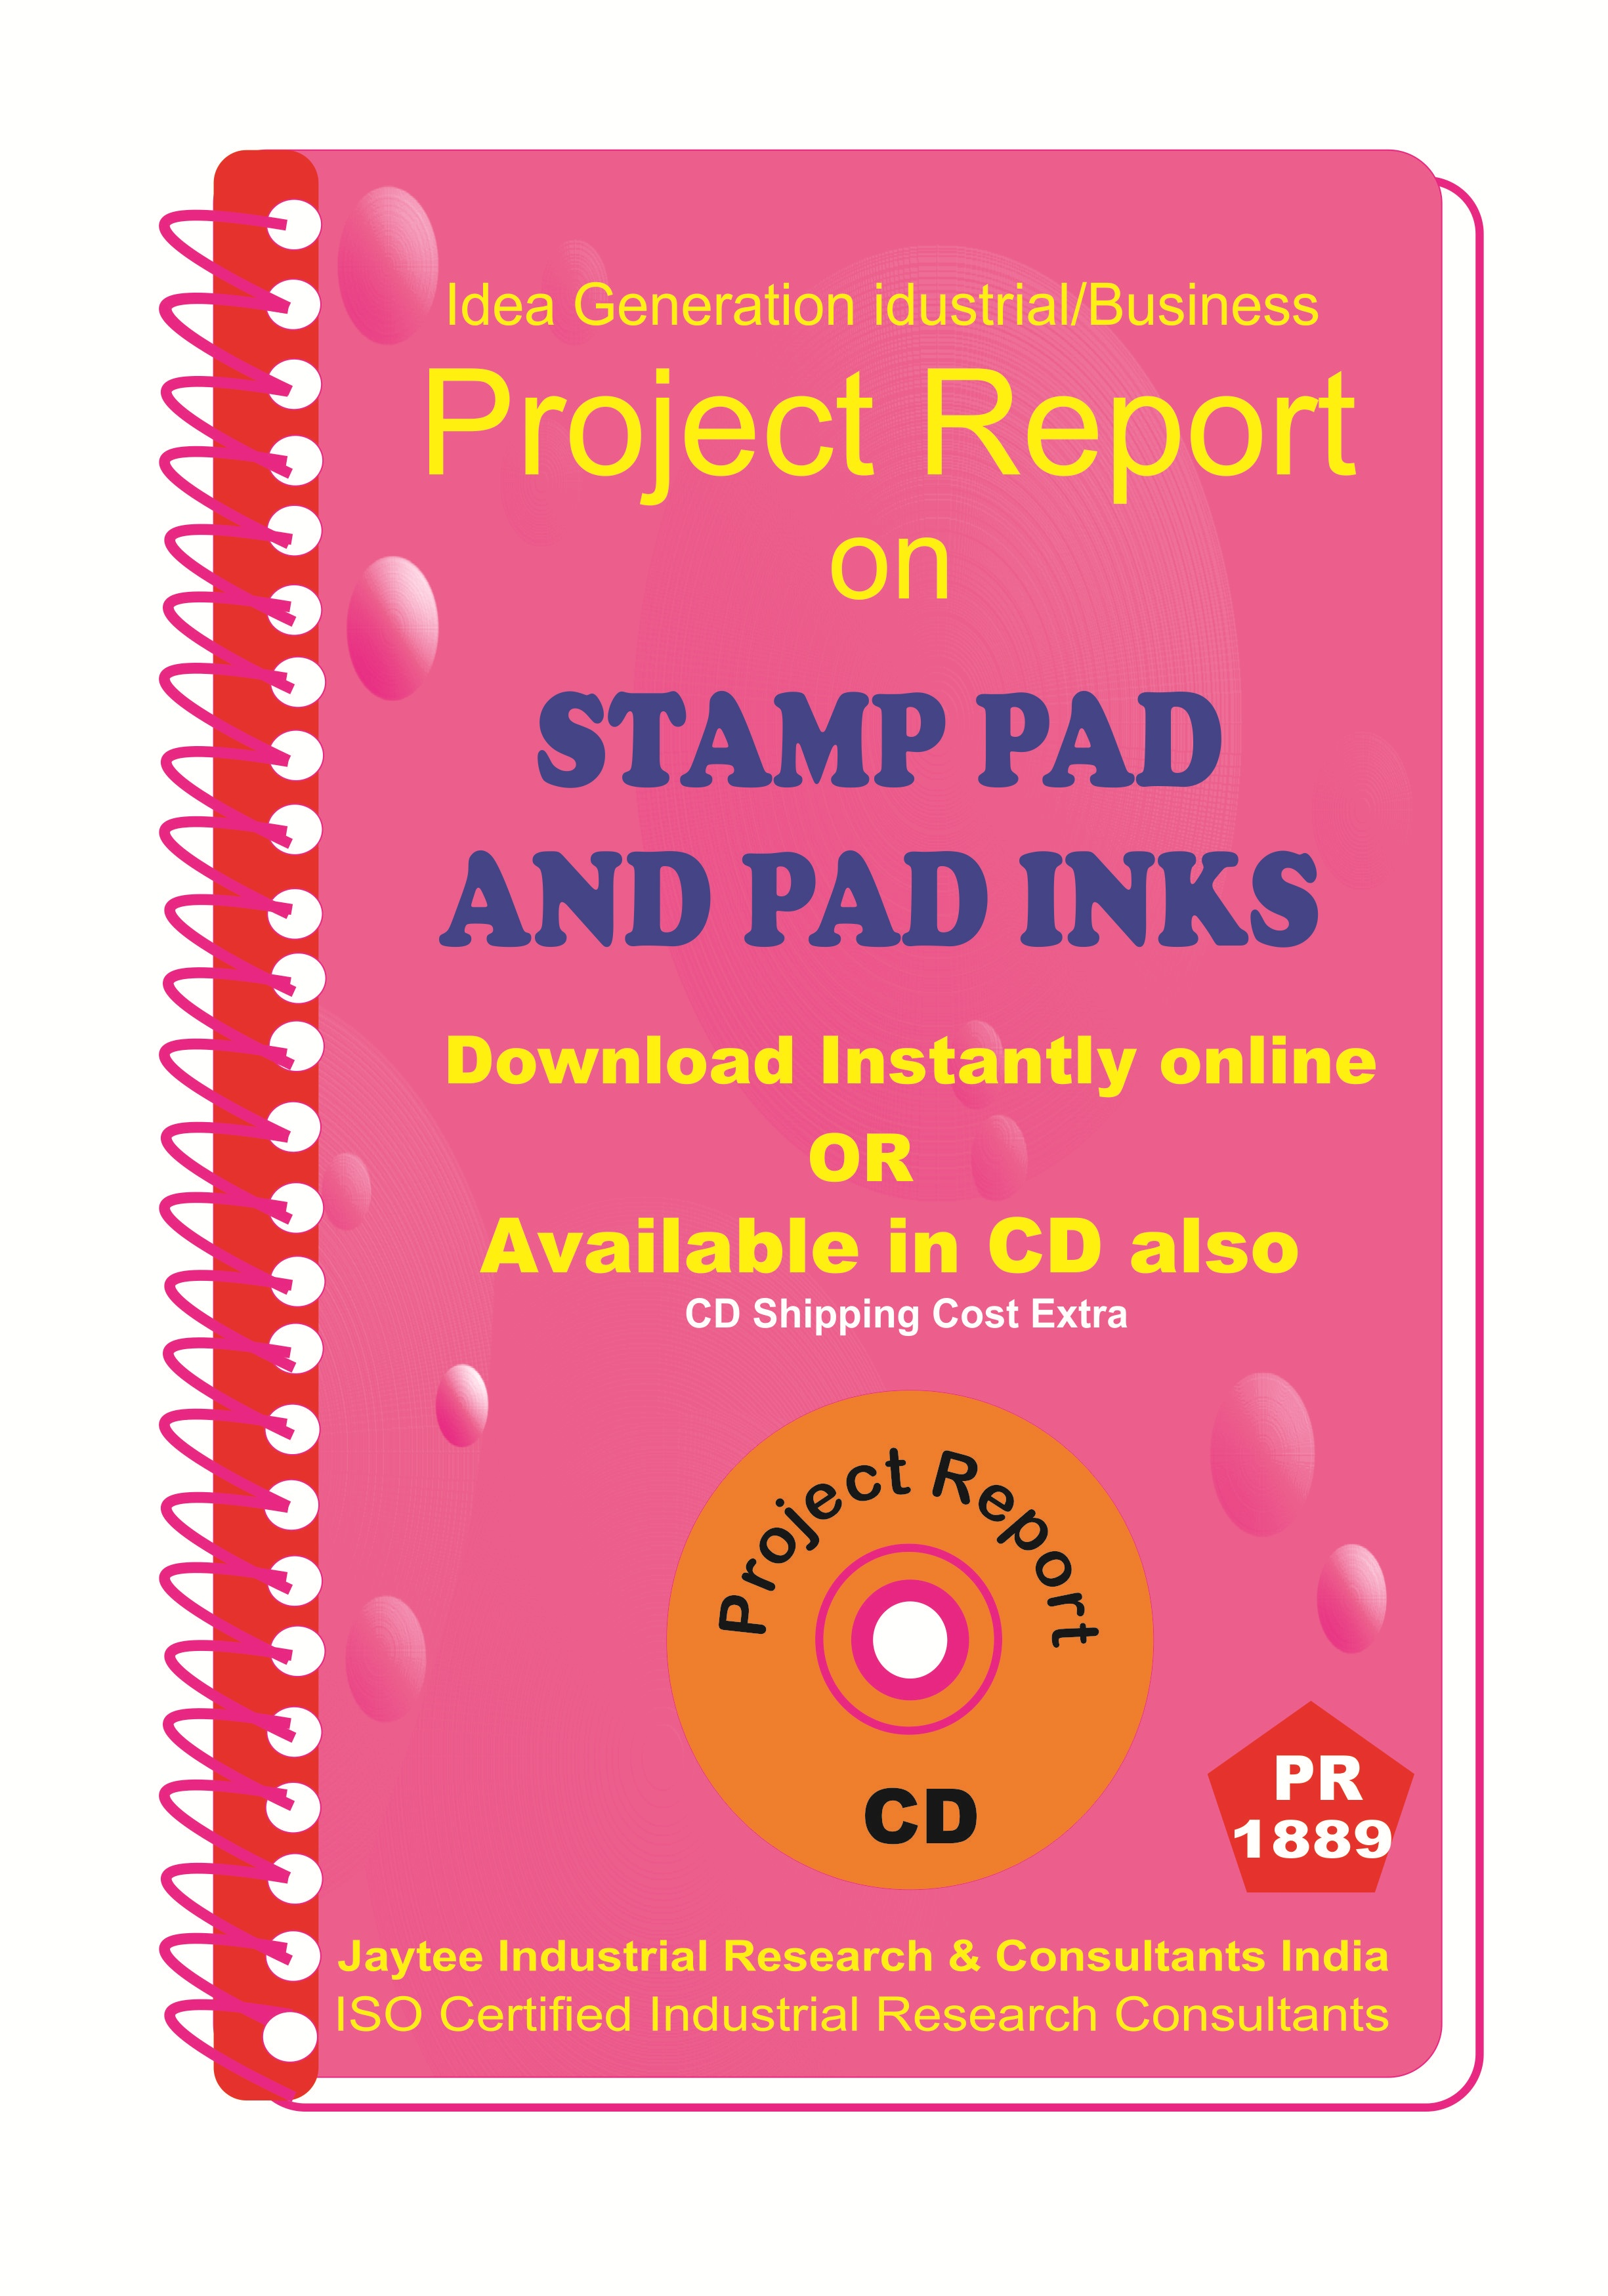 Stamp Pad And Pad inks manufacturing Project Report ebook